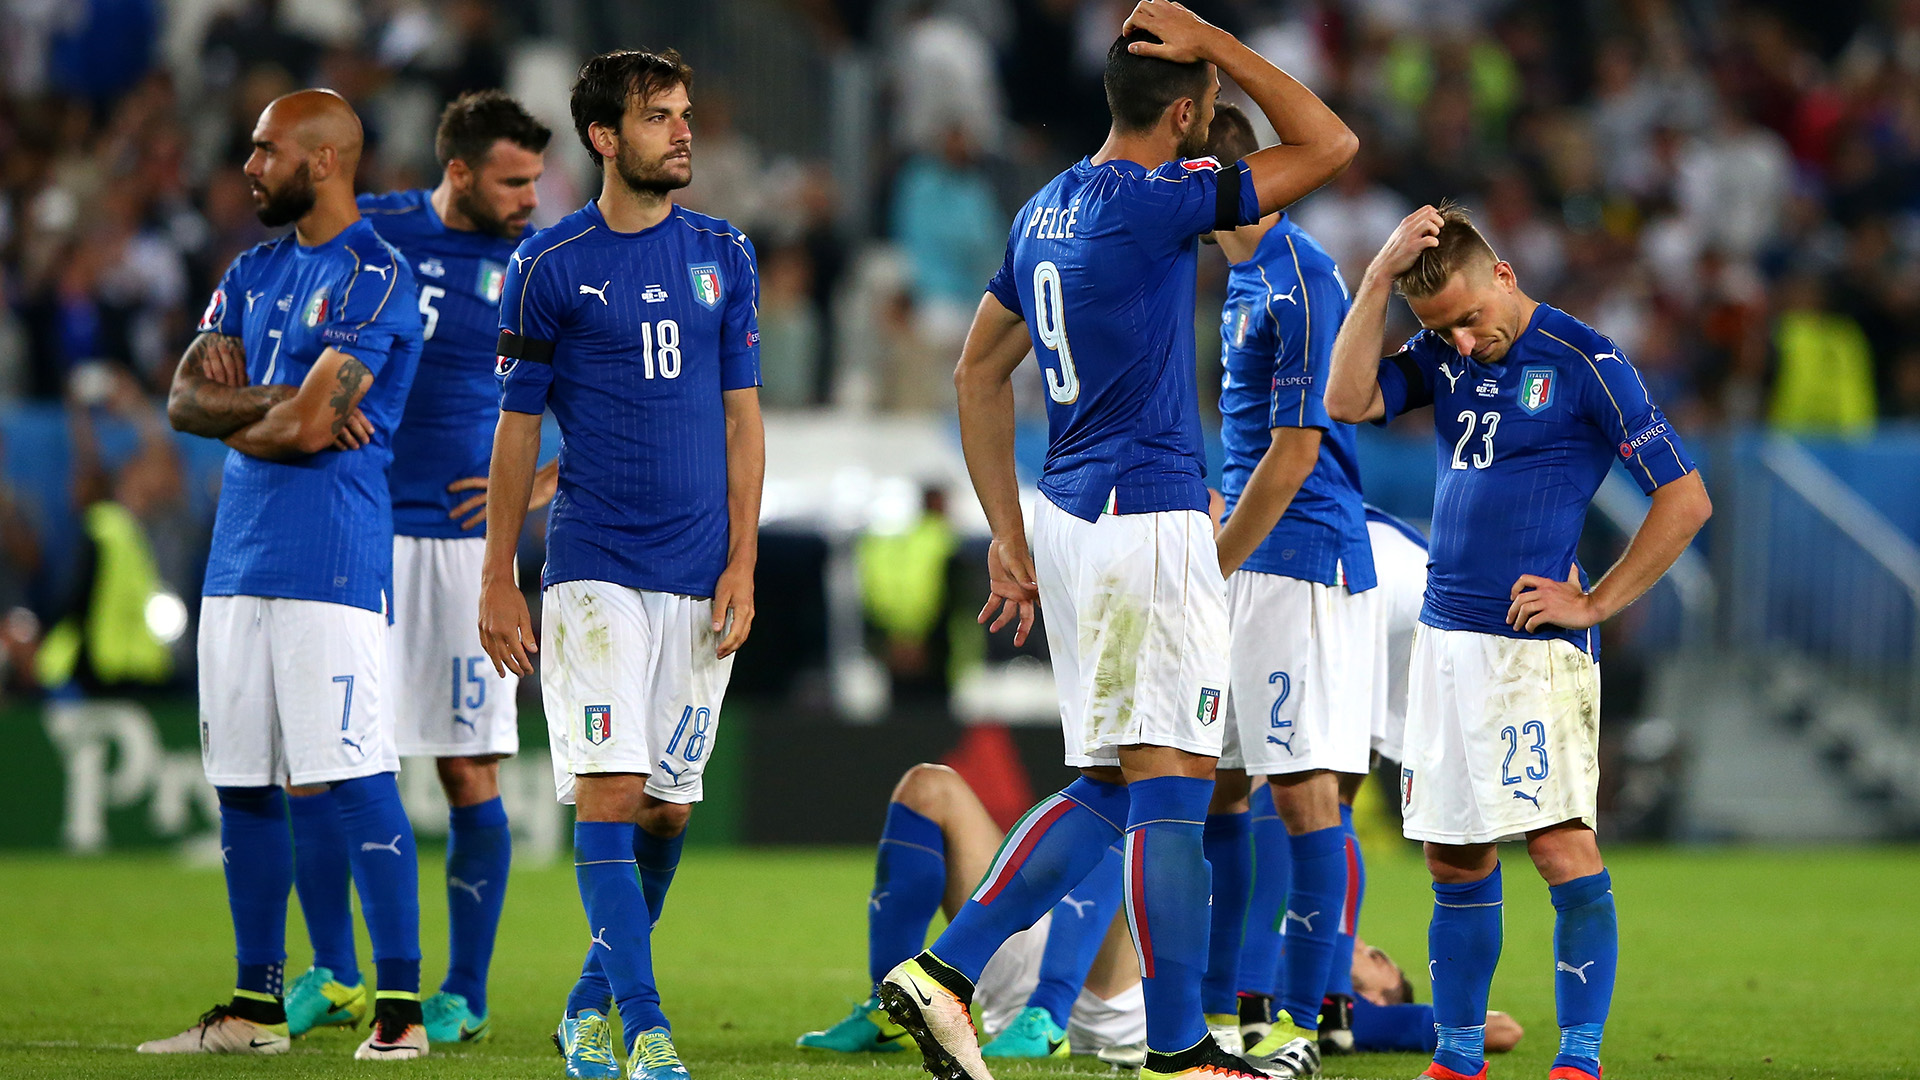 Euro 2016 news: Antionio Conte hits out at lack of support in Italy role